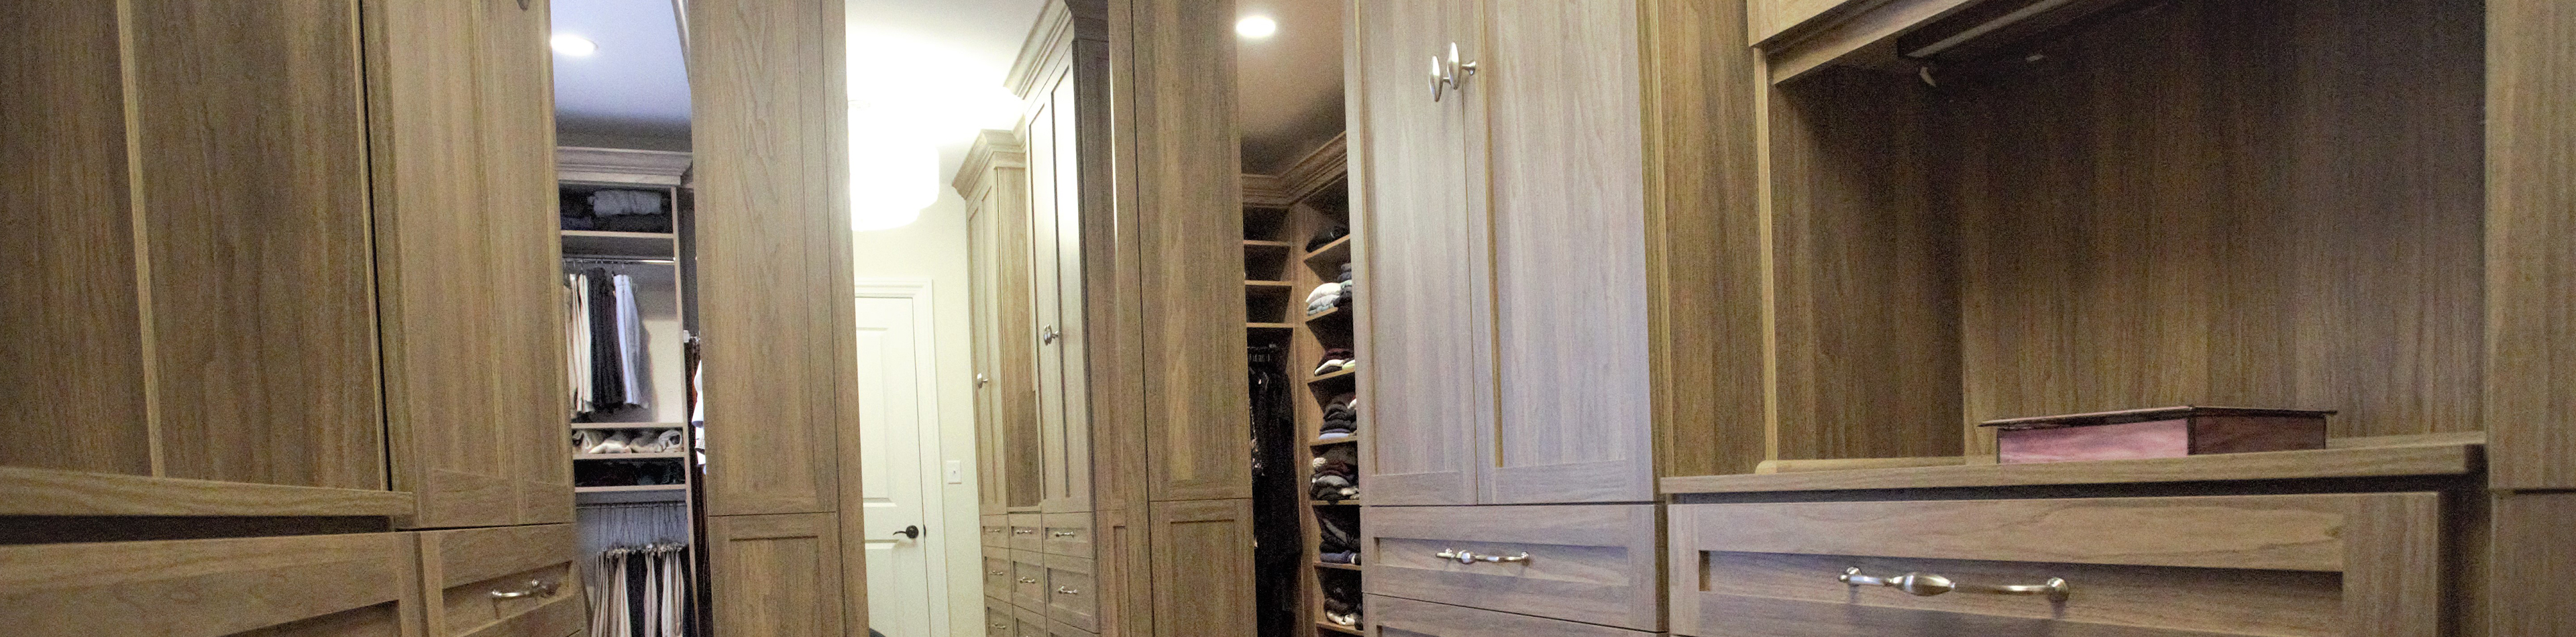 Innovative Closet Design's completed projects closet, storage, bath & organization inspiration to inspire homeowners.